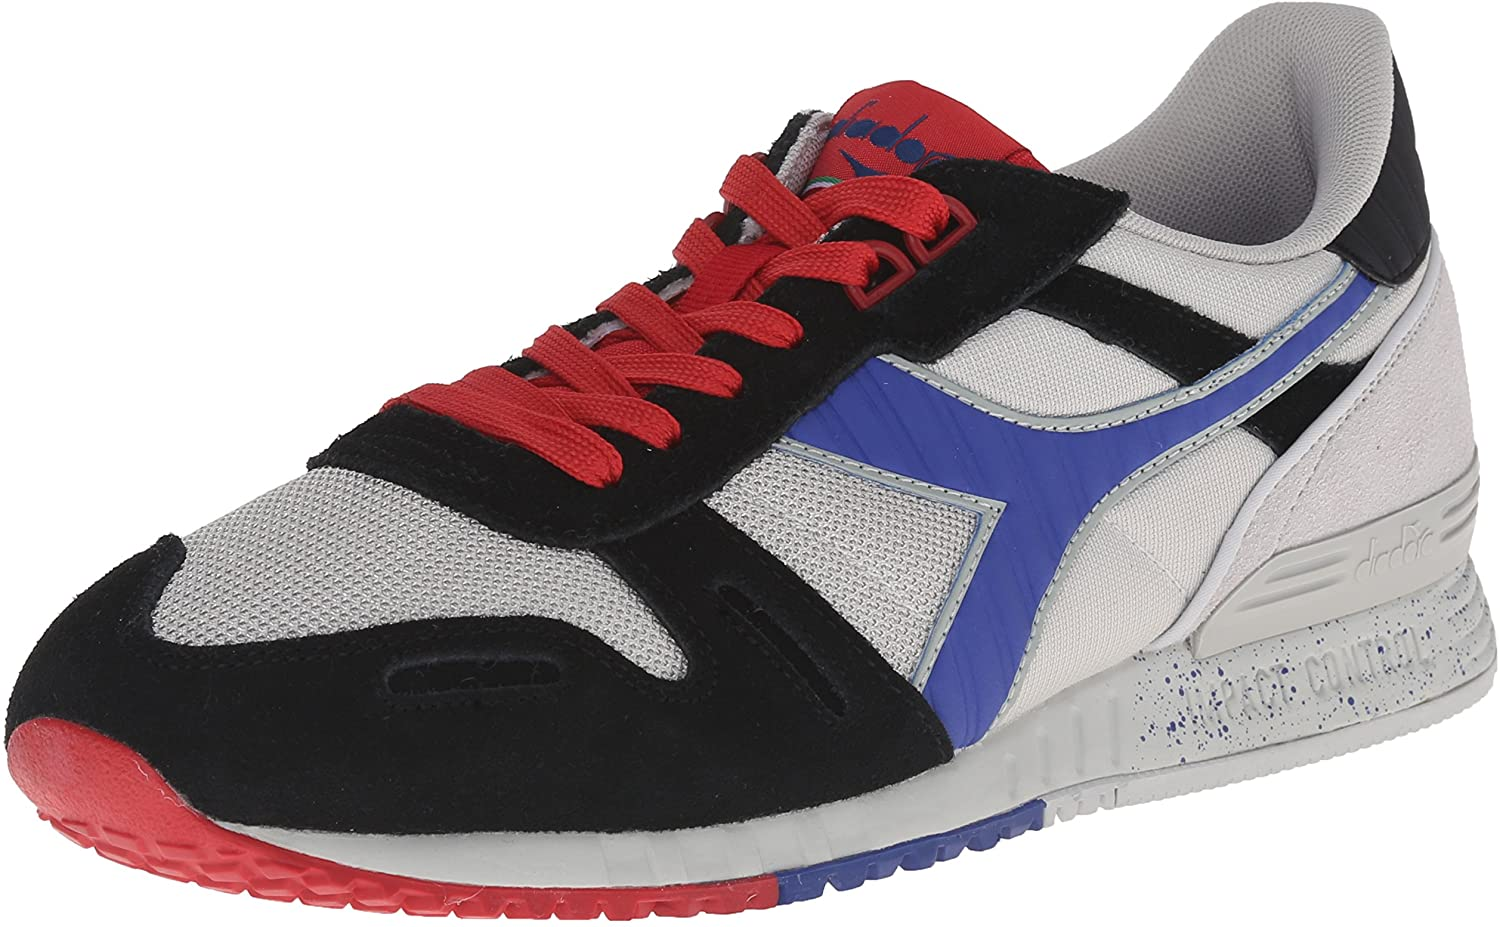 Diadora Men's Titan Speckled Fashion Running shoes